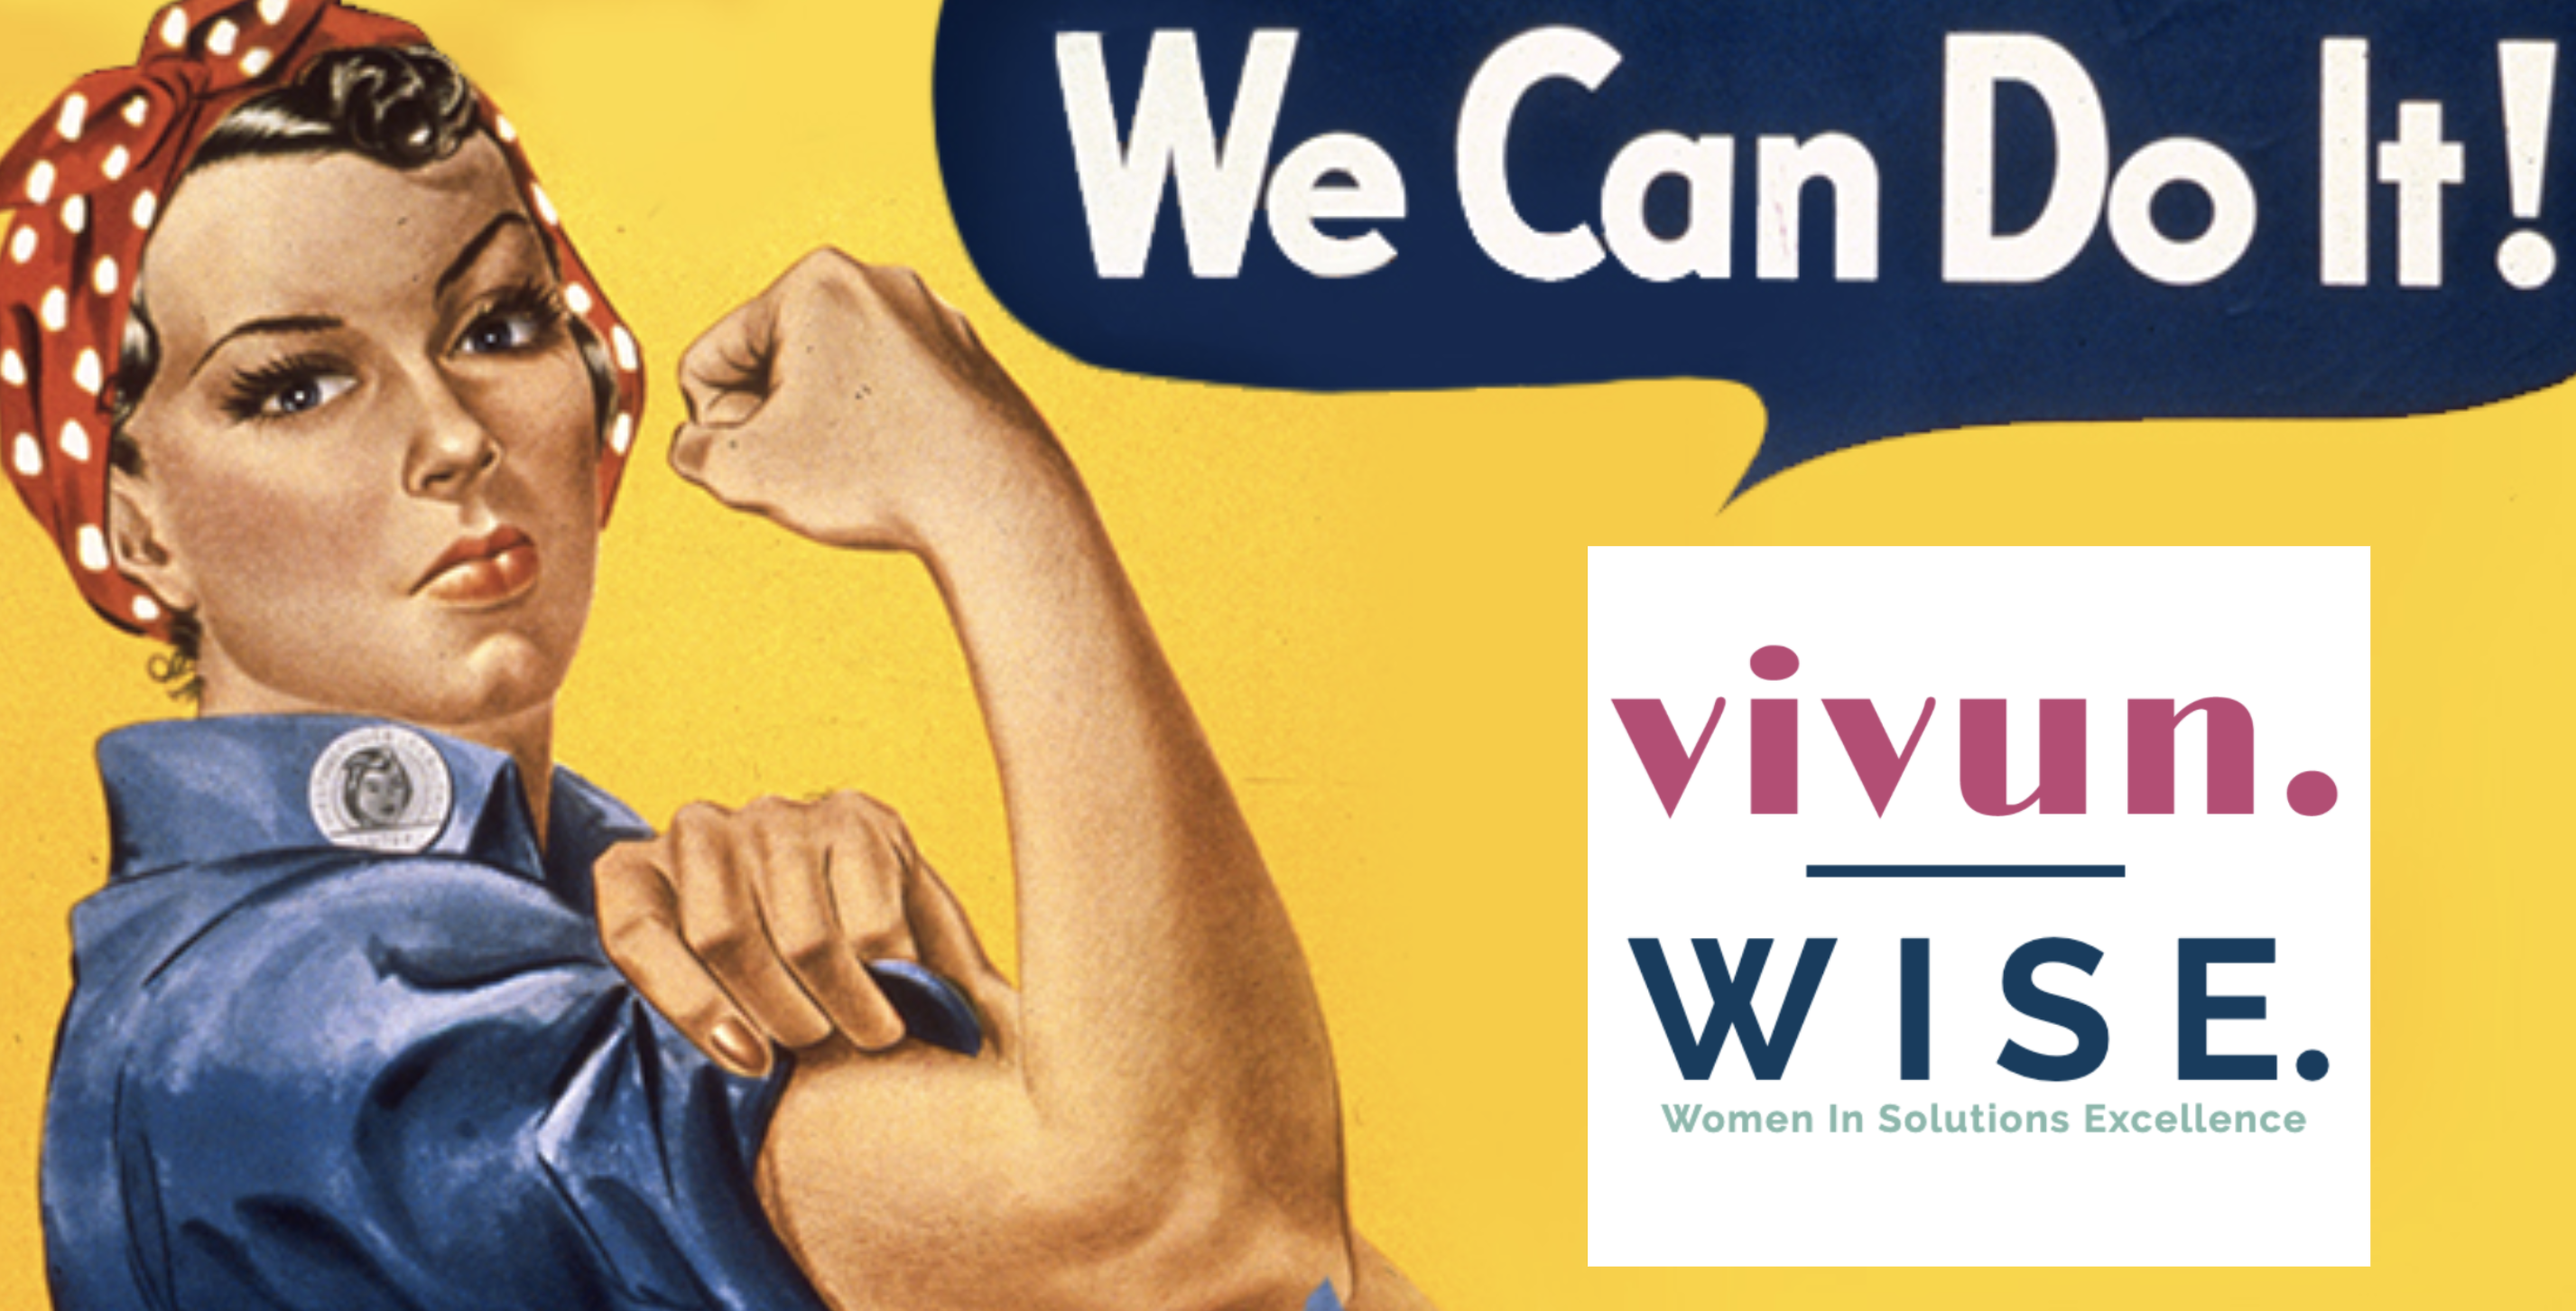 Vivun is committed to Bolstering Women in Solution Excellence